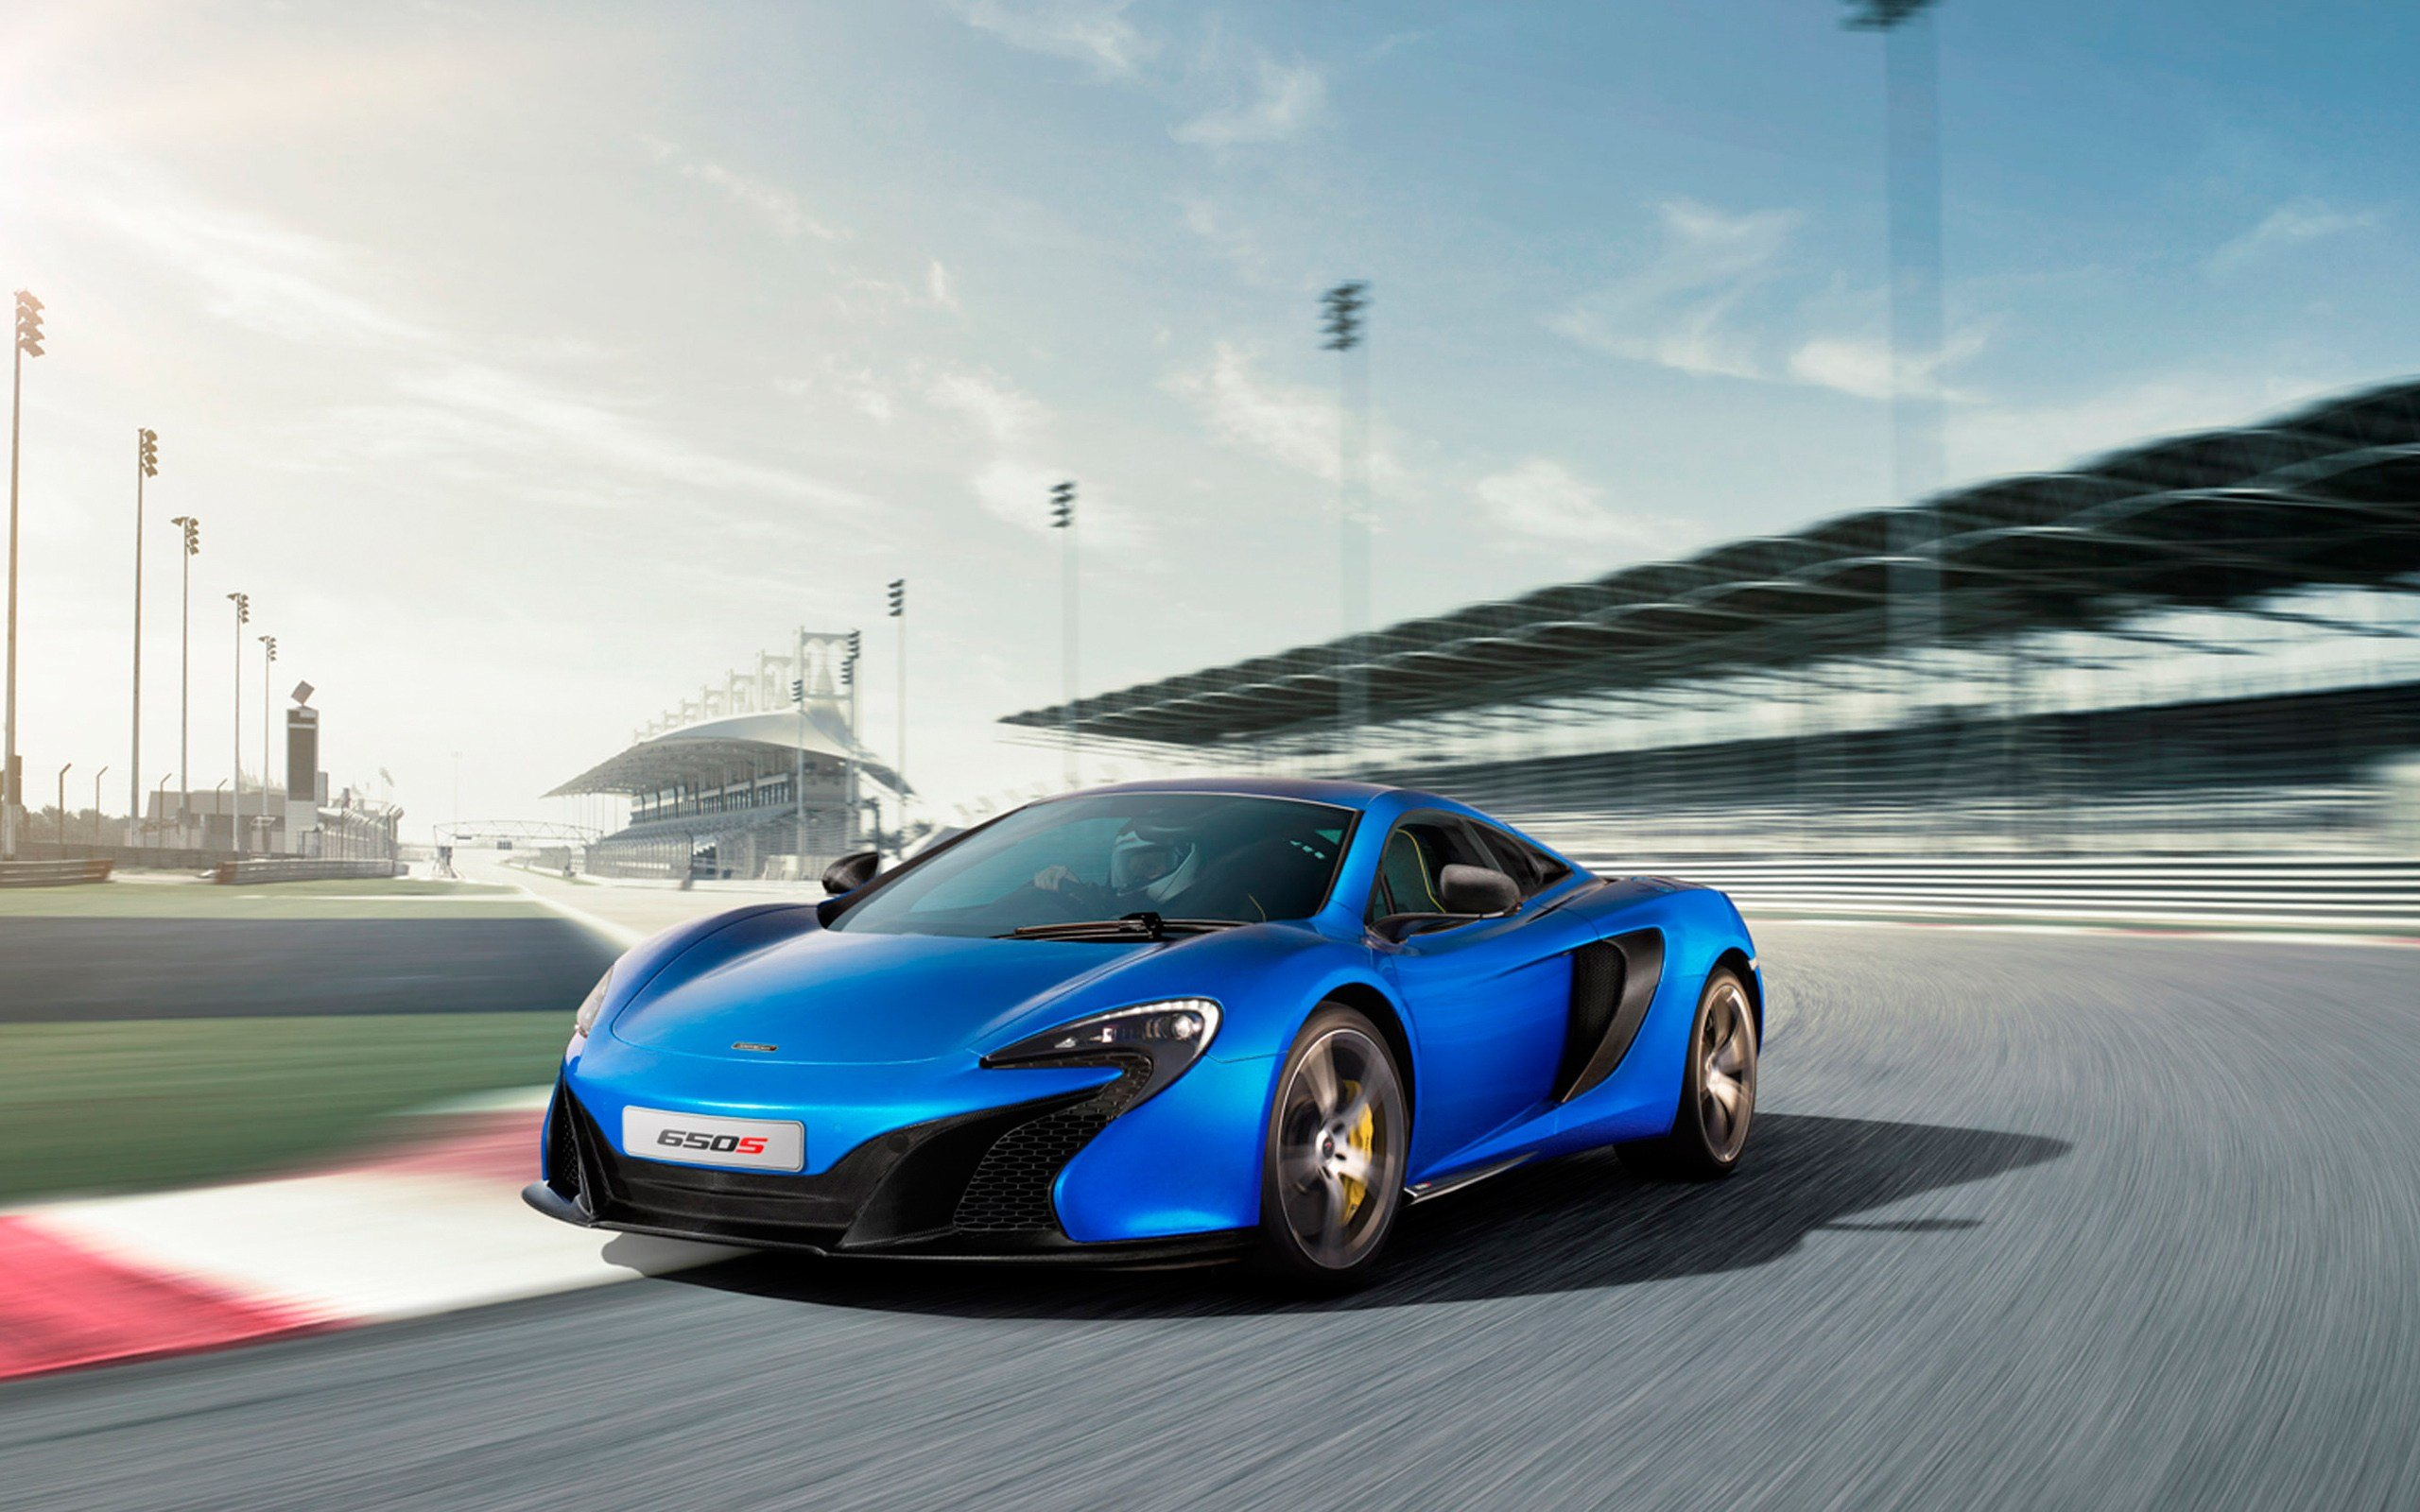 New 2015 Mclaren 650S Coupe Wallpaper Hd Car Wallpapers Id On This Month